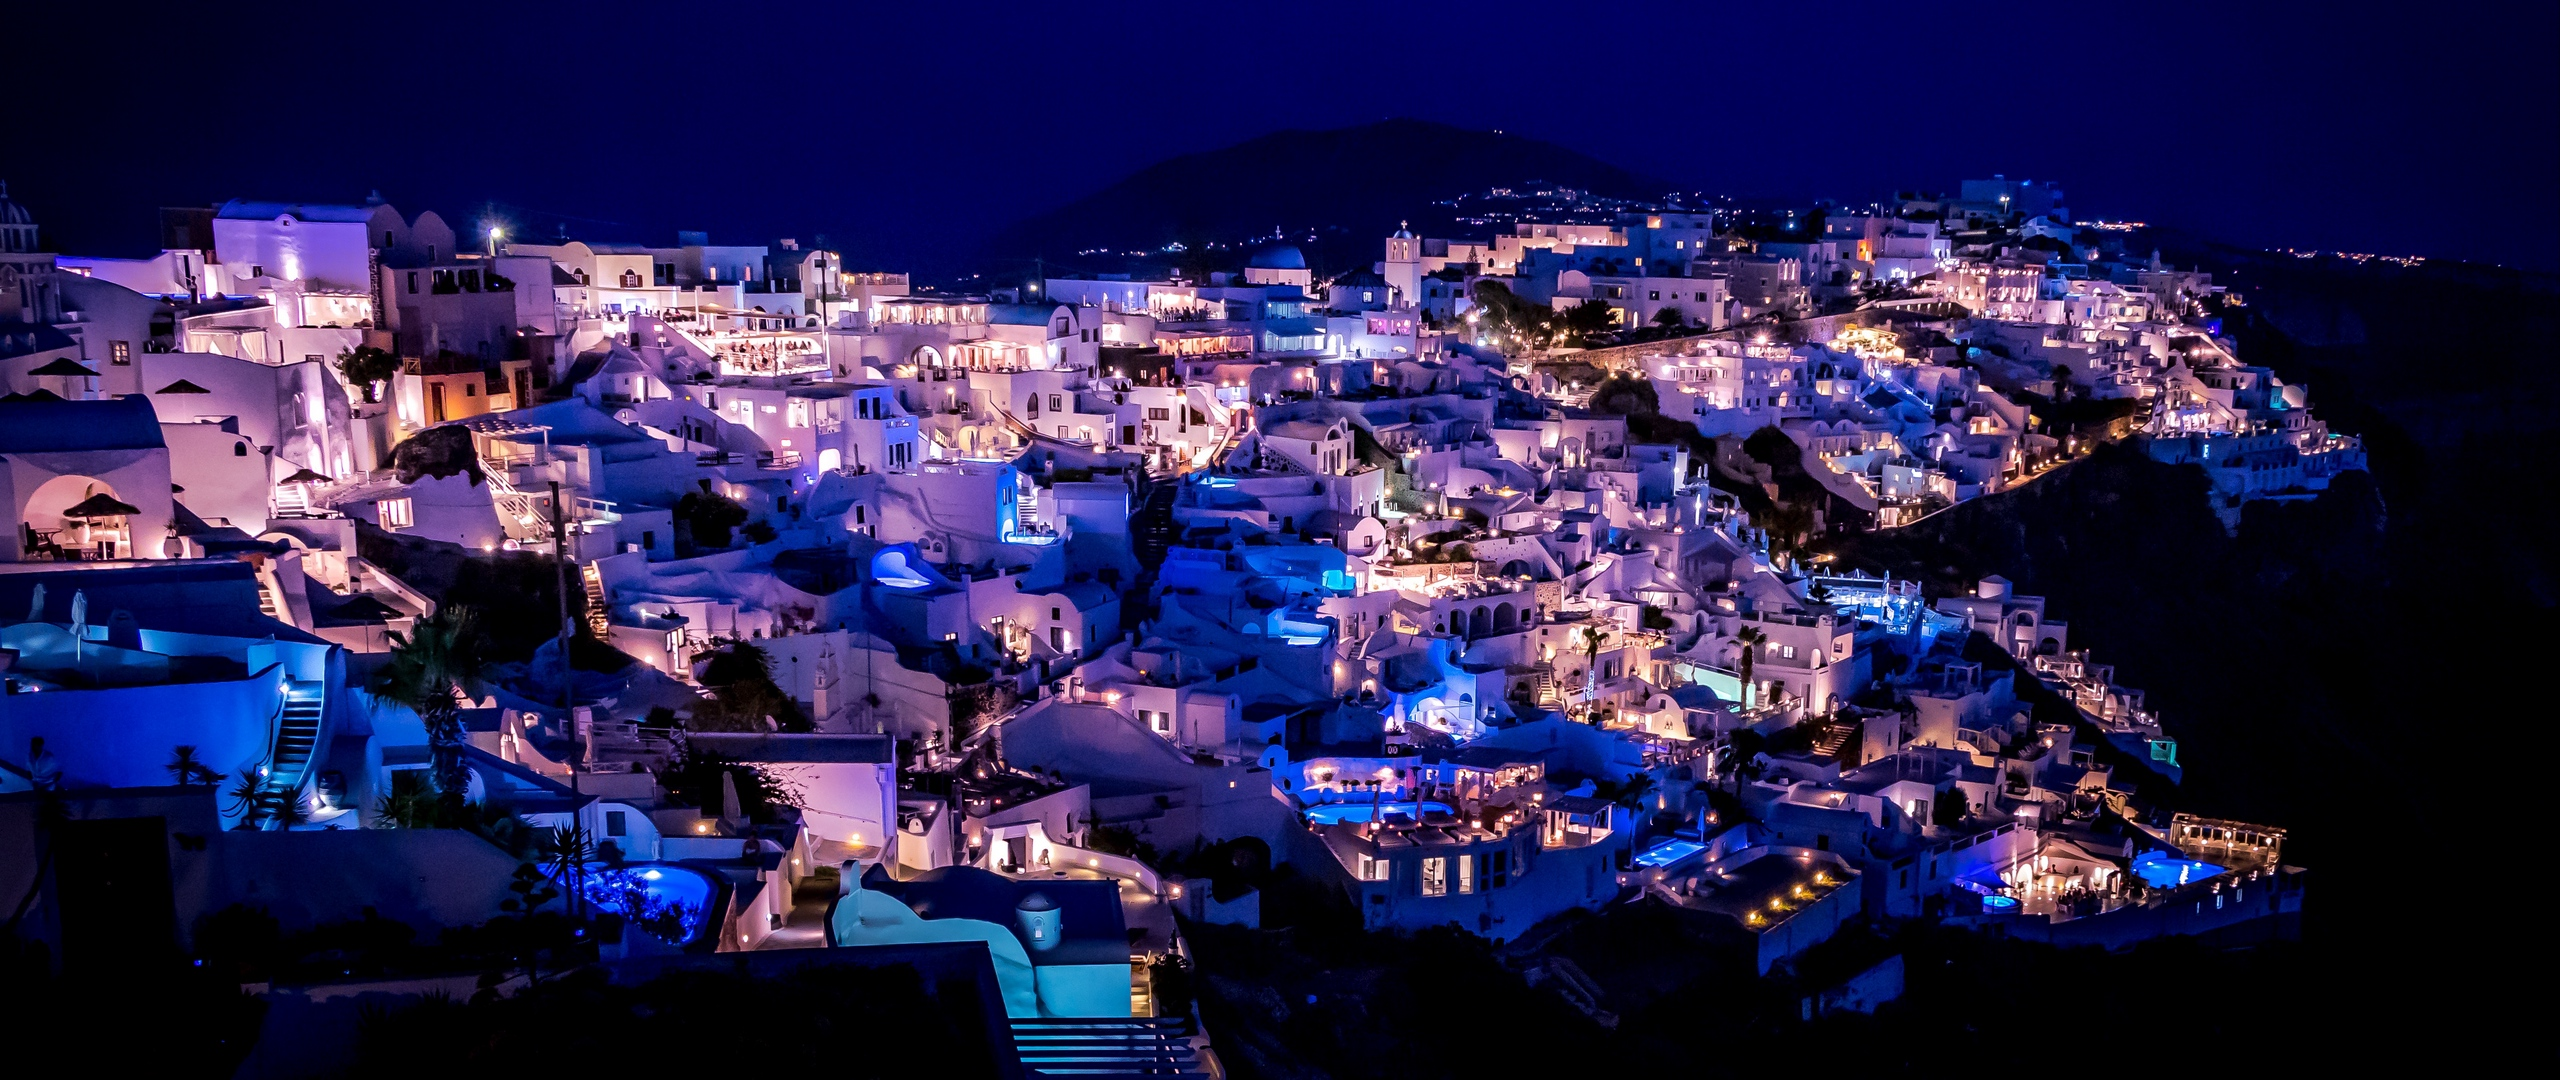 Download wallpaper 2560x1080 santorini greece night city 2560x1080